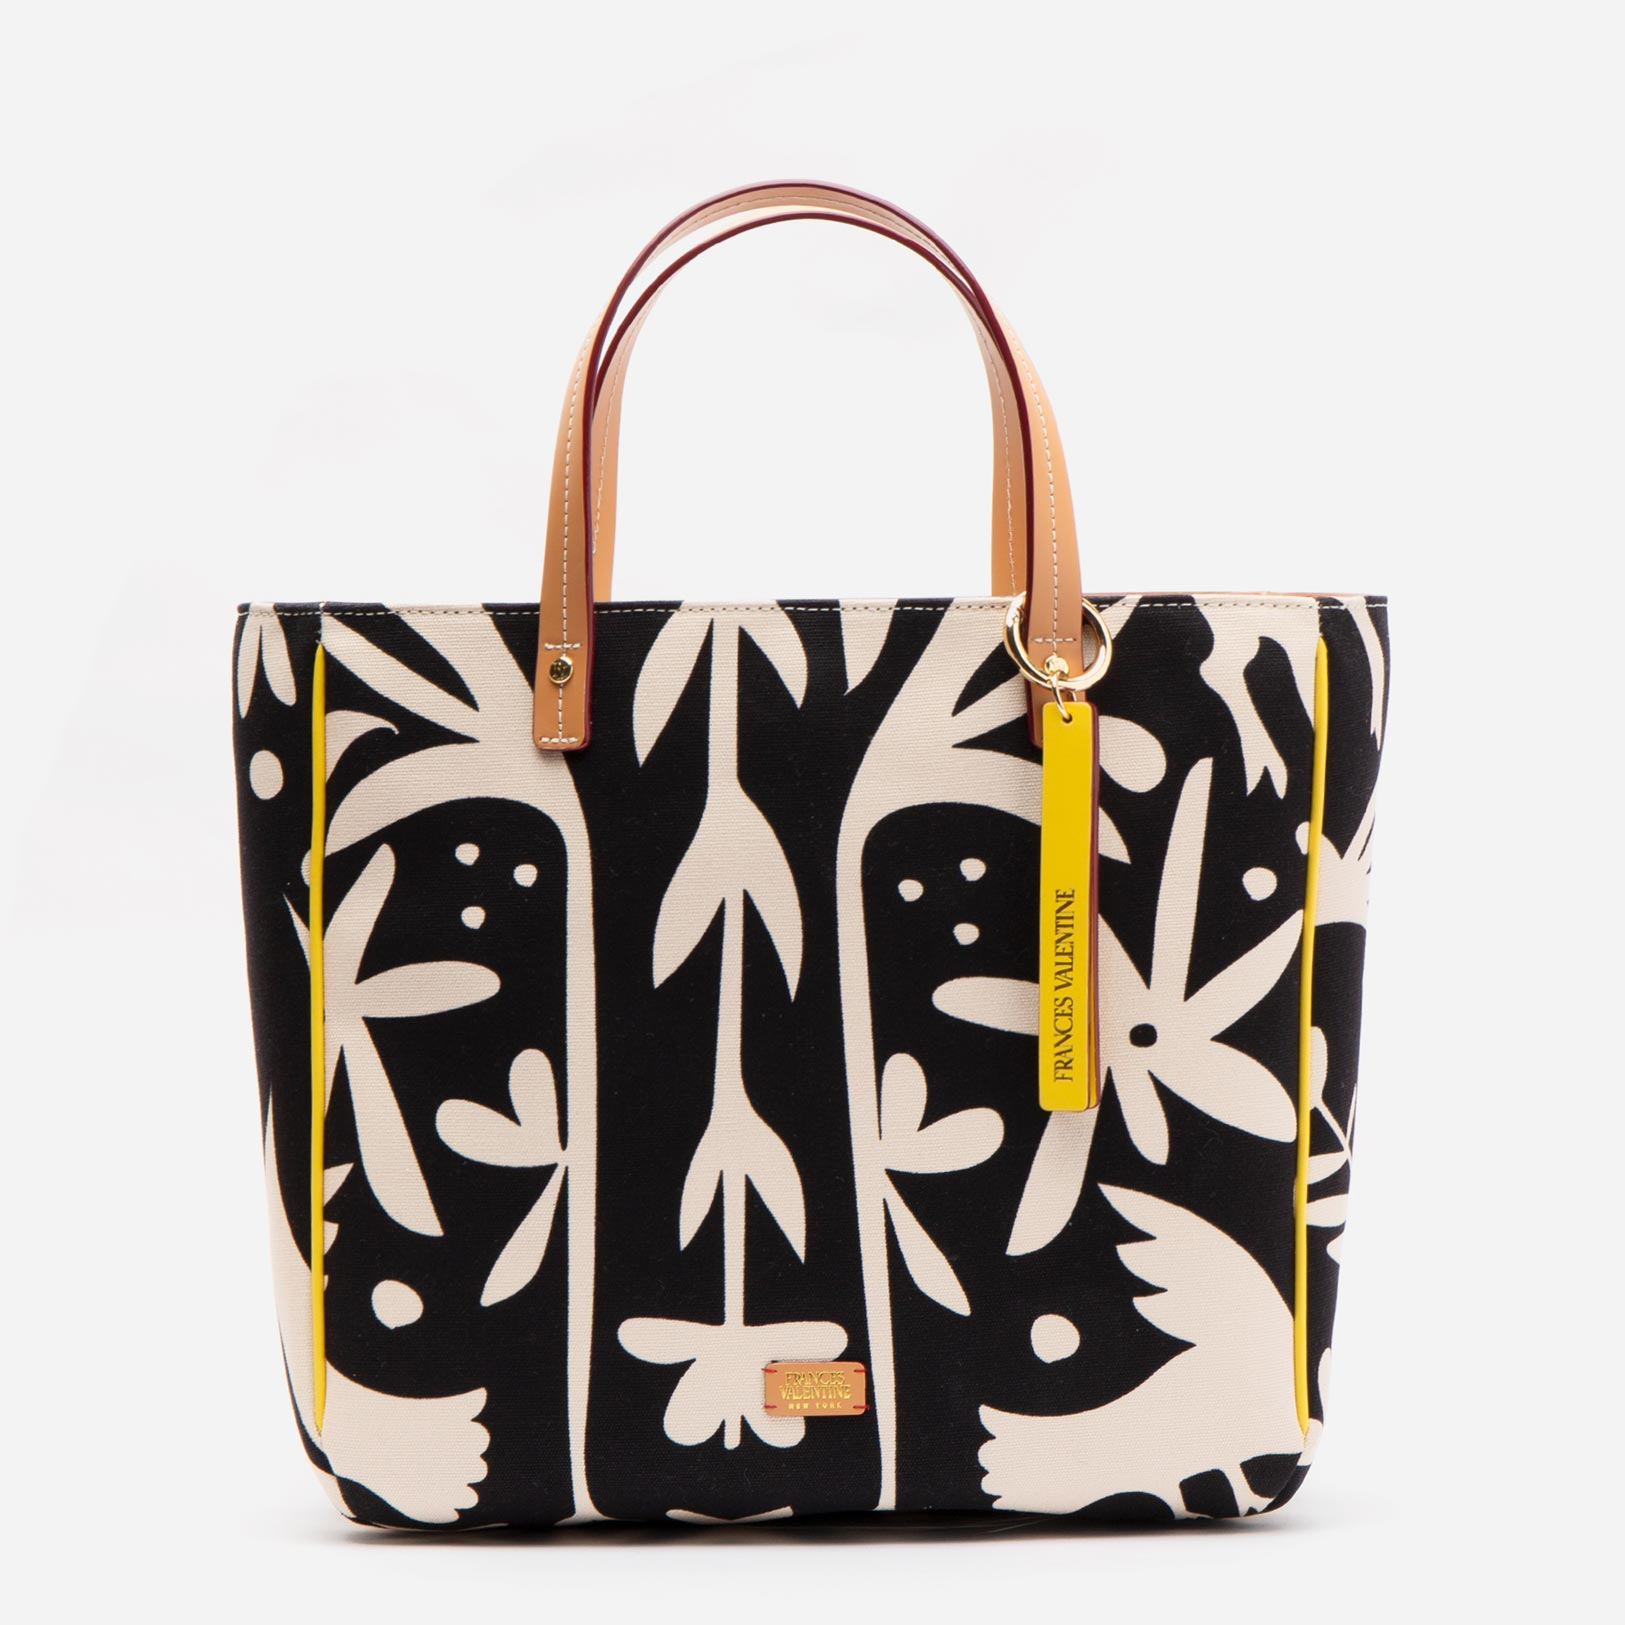 Margaret Tote Veracruz Printed Canvas Black Oyster